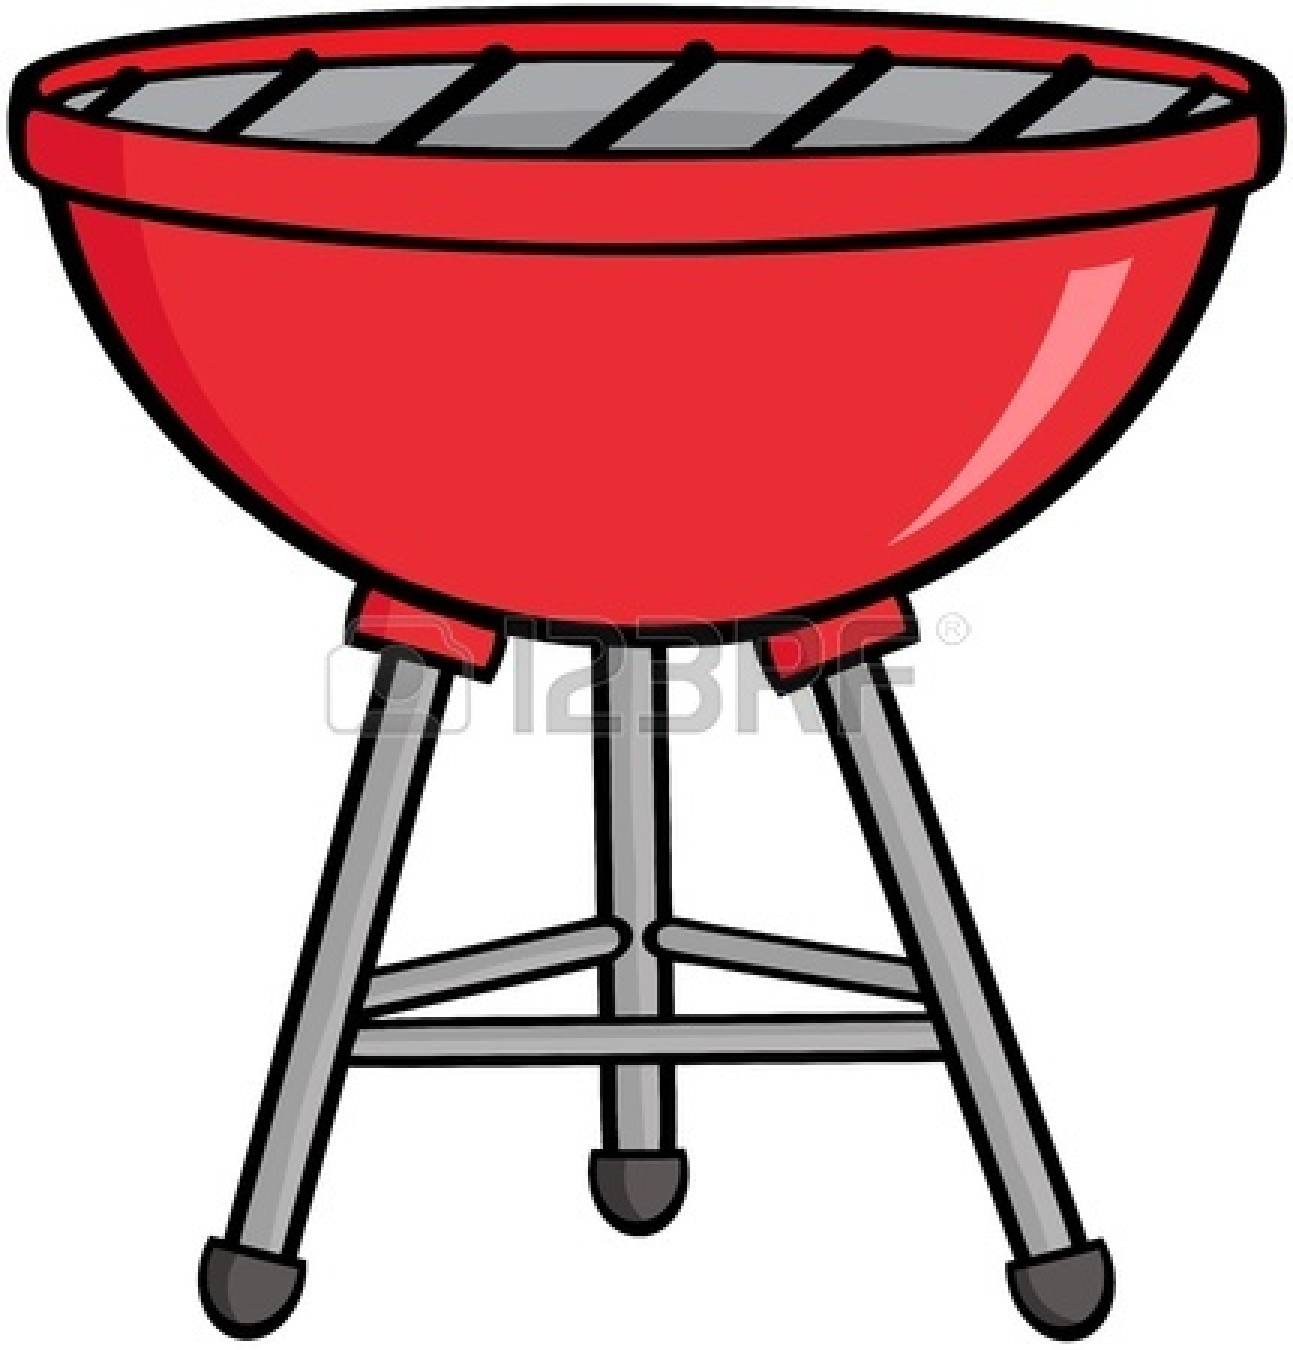 hight resolution of bbq grill clipart 2